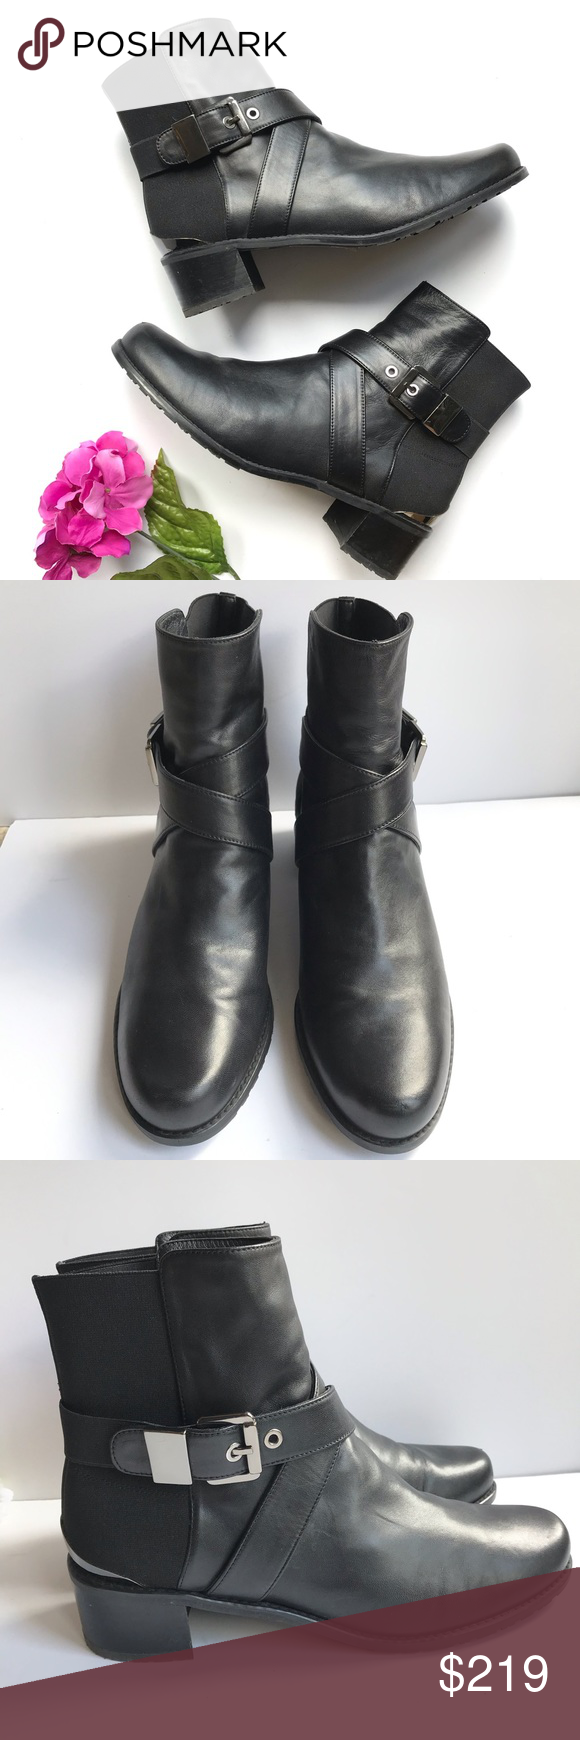 """Stuart Weitzman Black Buckle Manlow Ankle Boots Brand: Stuart Weitzman Size: 9.5M Color: Black Style: """"Manlow"""" Stretch-Back Buckled Ankle Boot Heel Height: 1.75""""  Decorative buckle at exterior side. Stretch-inset ankle strap crisscrosses front. Reinforced backstay with metal heel plate. Leather lining and insole. Rubber sole with logo treads for traction. Made in Spain  Great condition"""